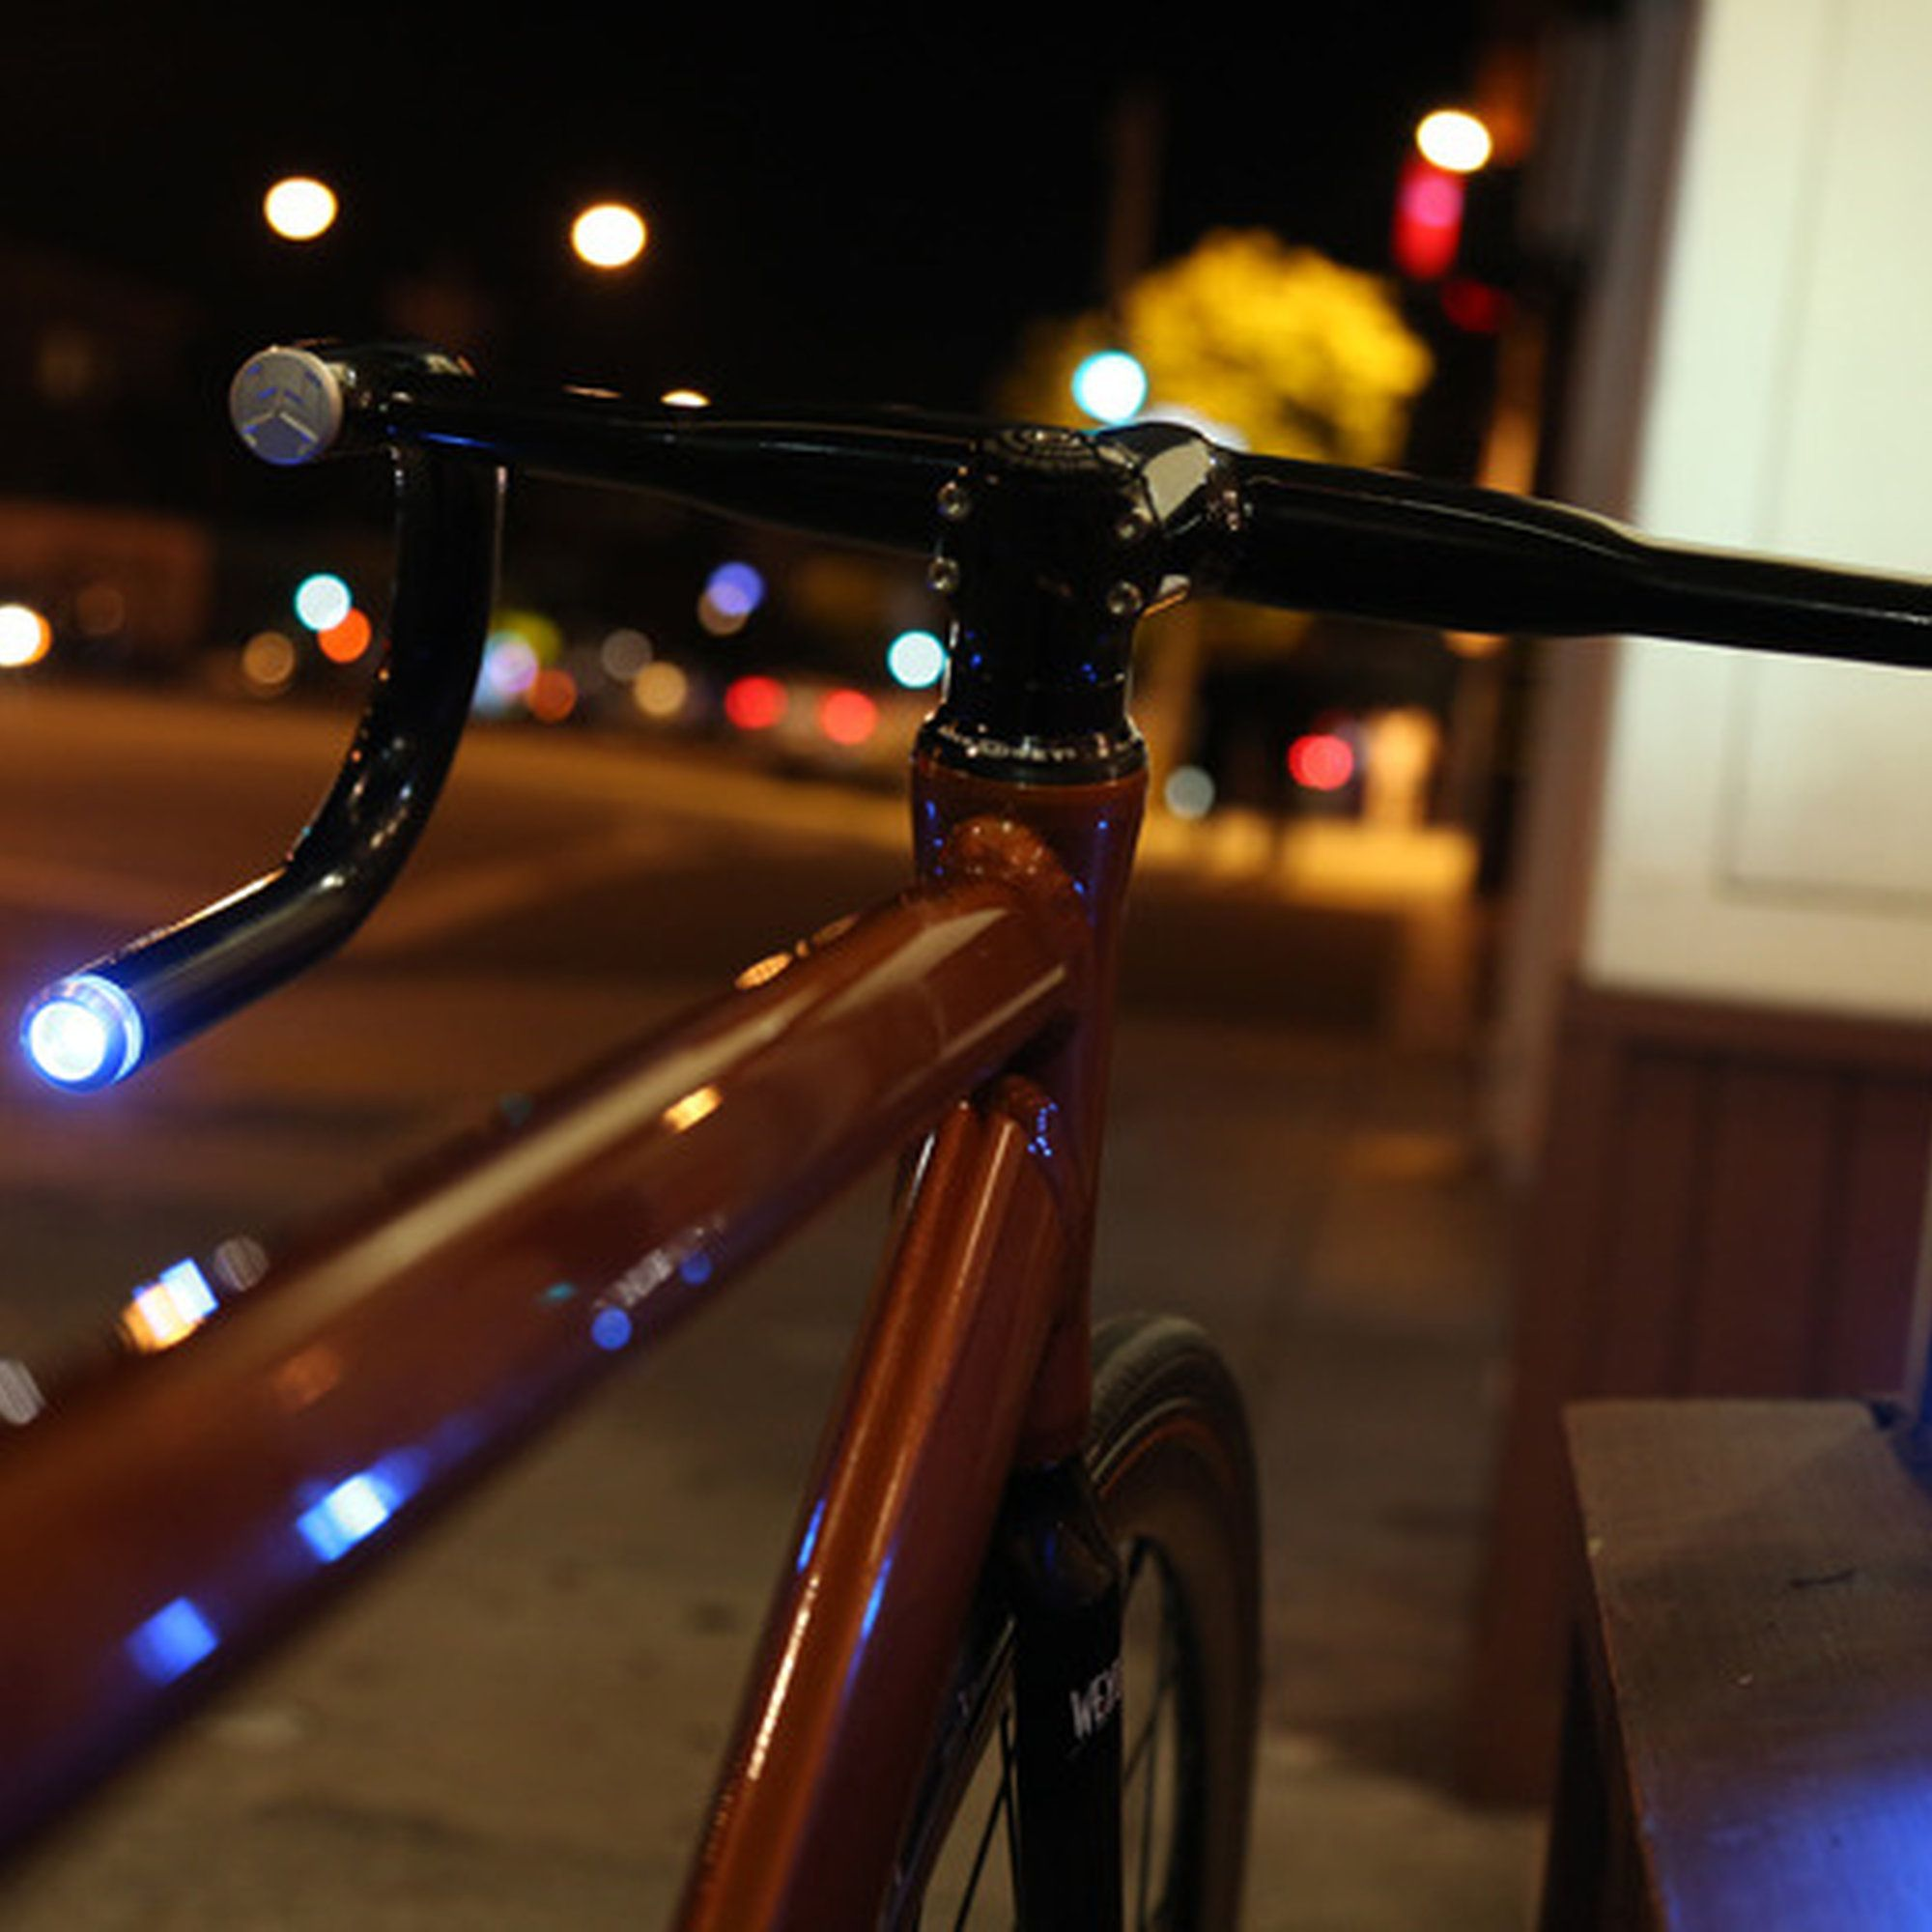 Tech D Up Handlebars That Can Do Everything But Steer Themselves